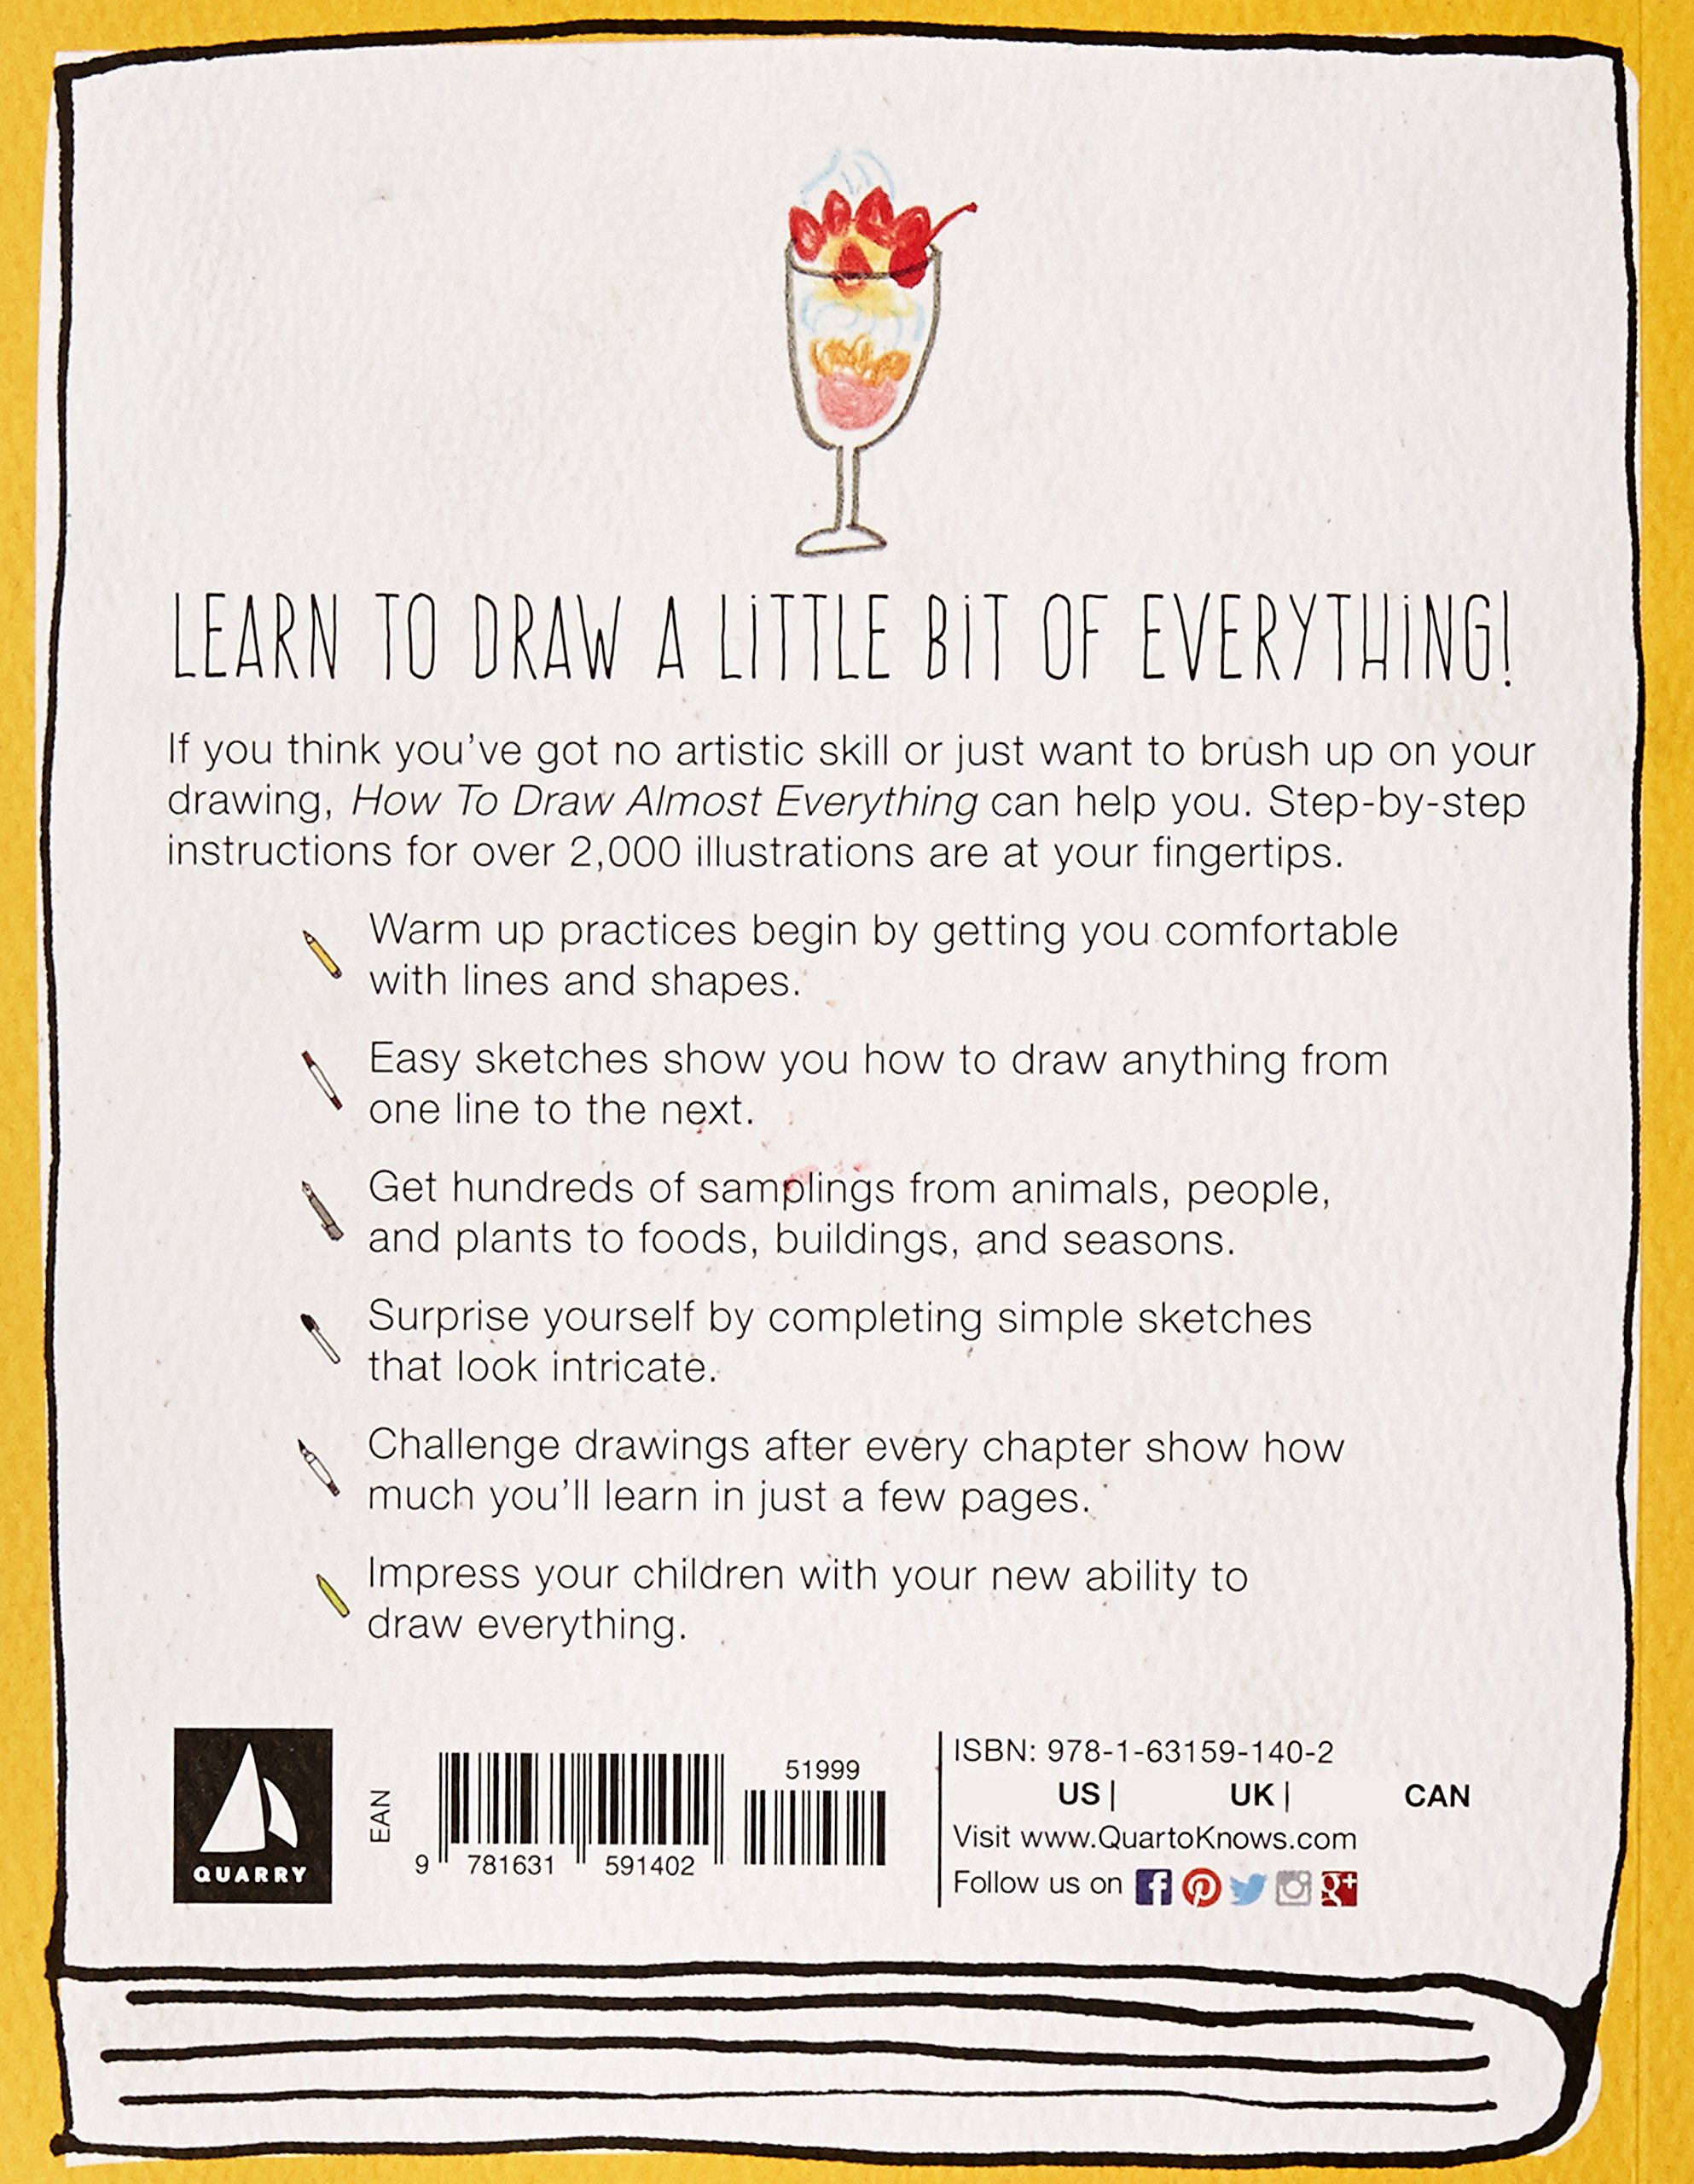 Amazon: How To Draw Almost Everything: An Illustrated Sourcebook  (9781631591402): Chika Miyata: Books